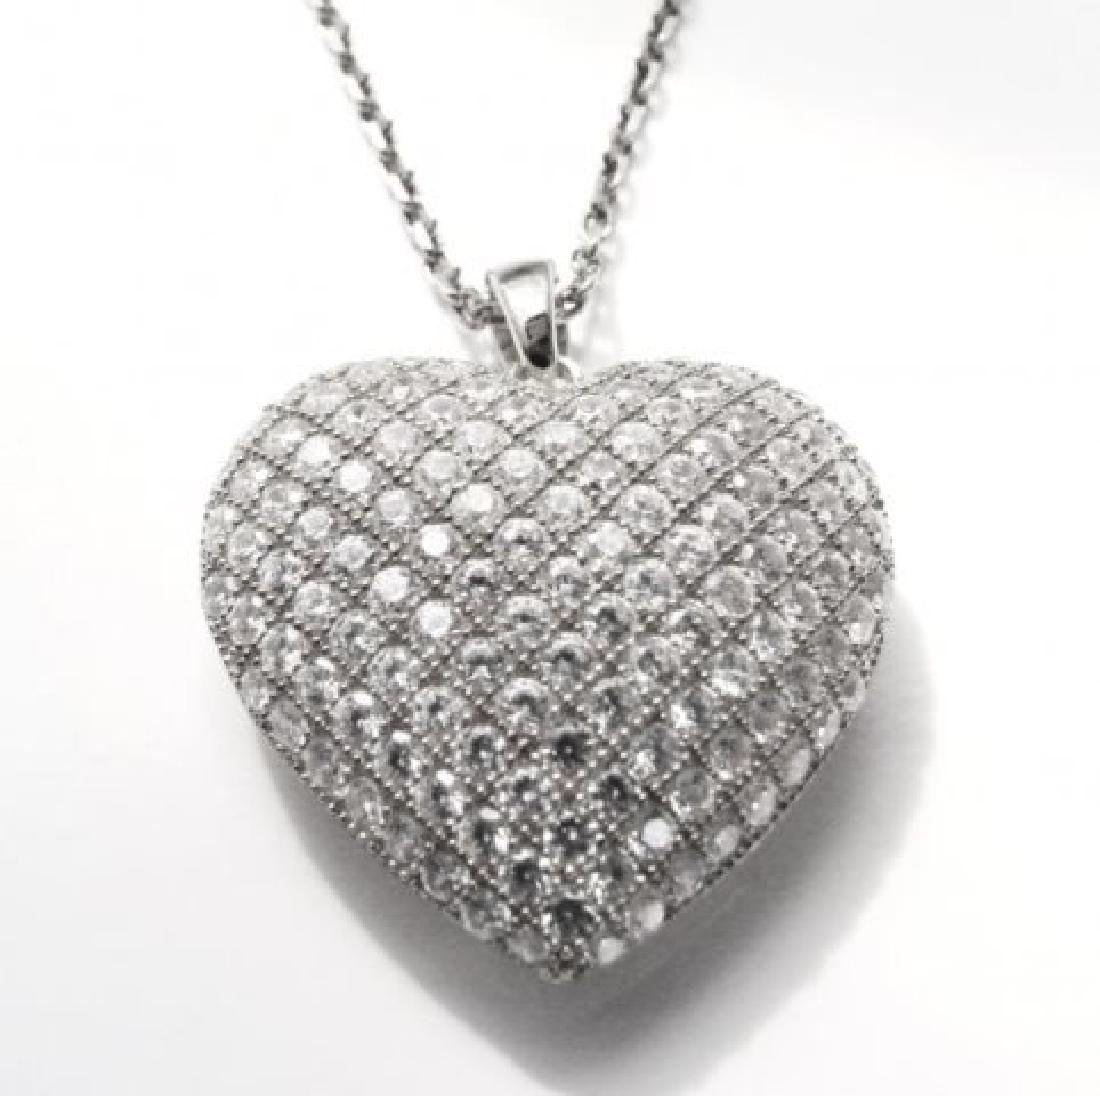 Creation Diamond Heart Pendant 2.00ct 18kW/g Over